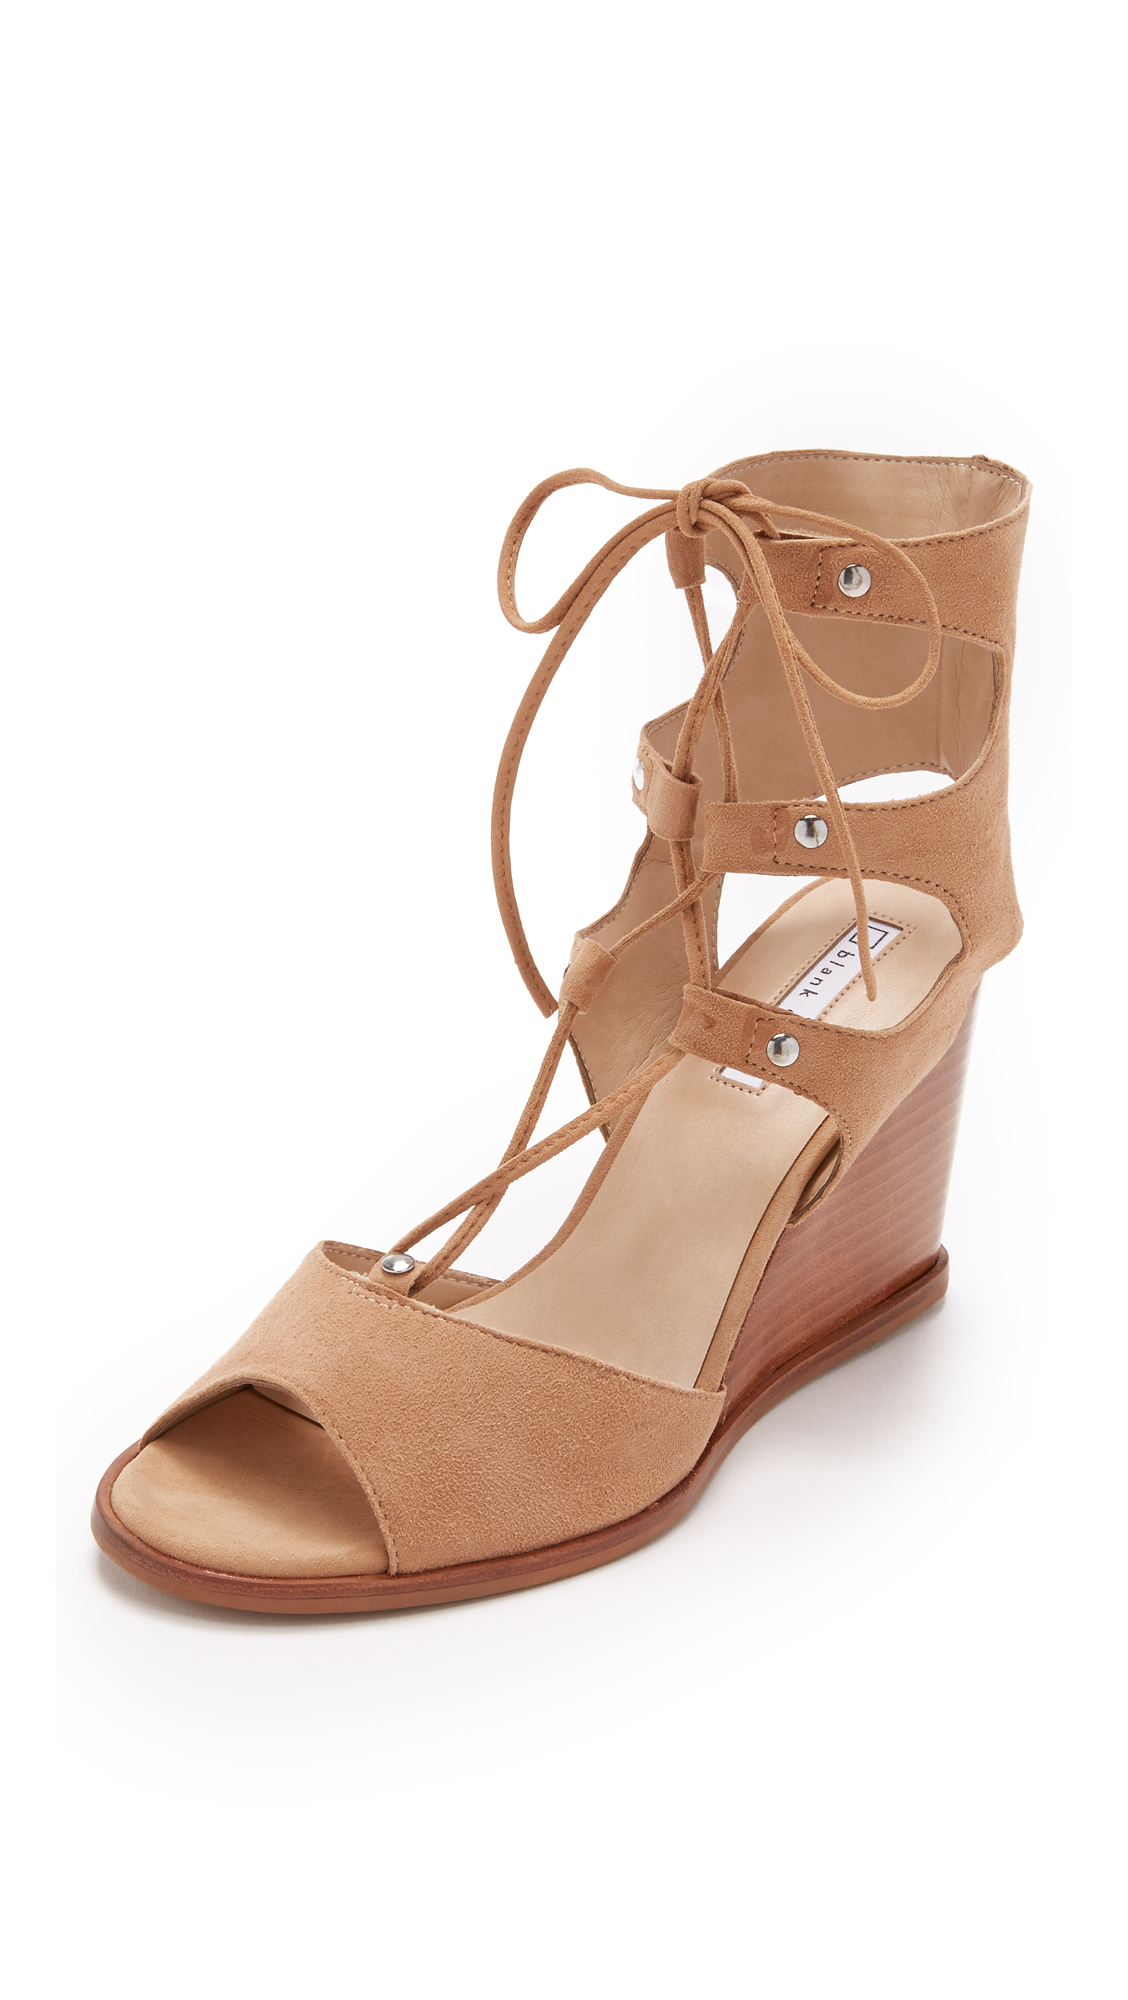 Blank Canvas Lace Up Wedge Sandals - Wheat at Shopbop